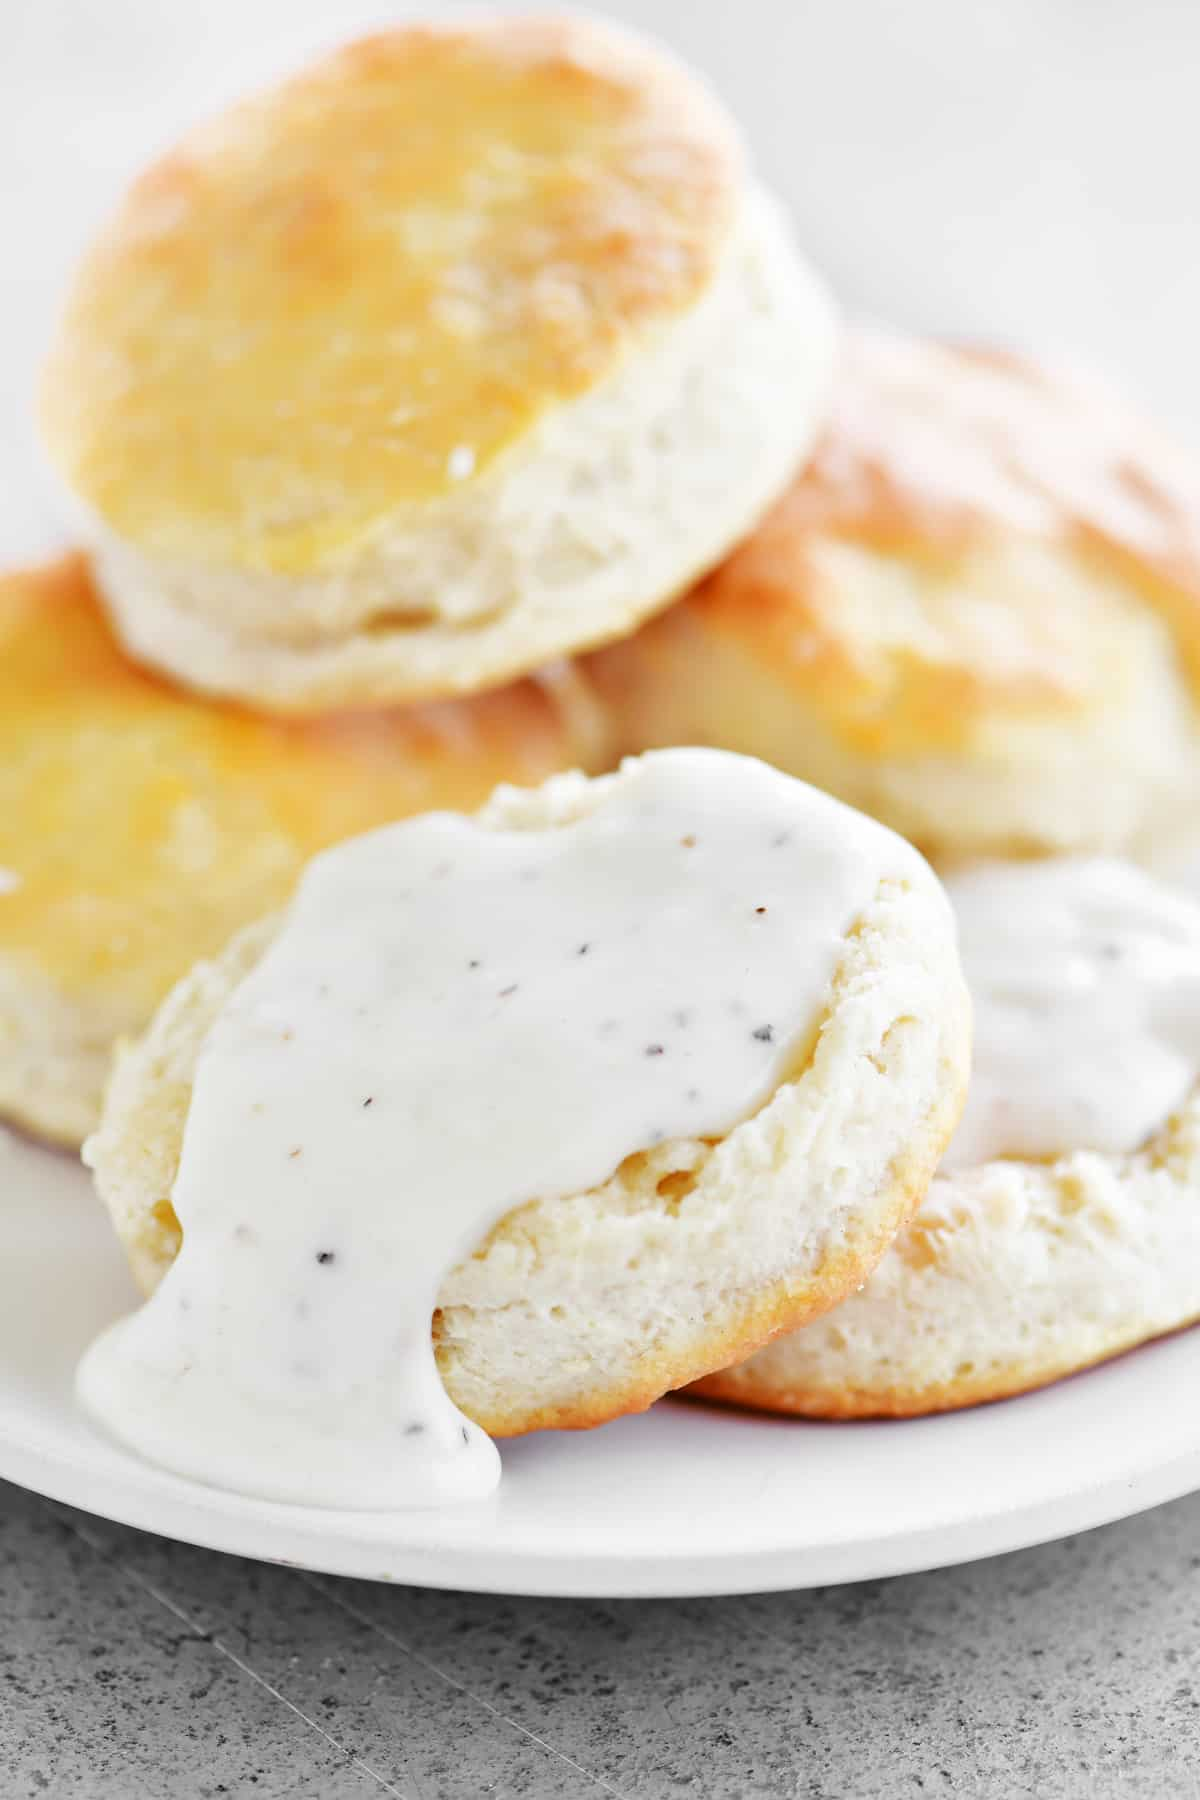 split biscuit on a plate with white gravy on top